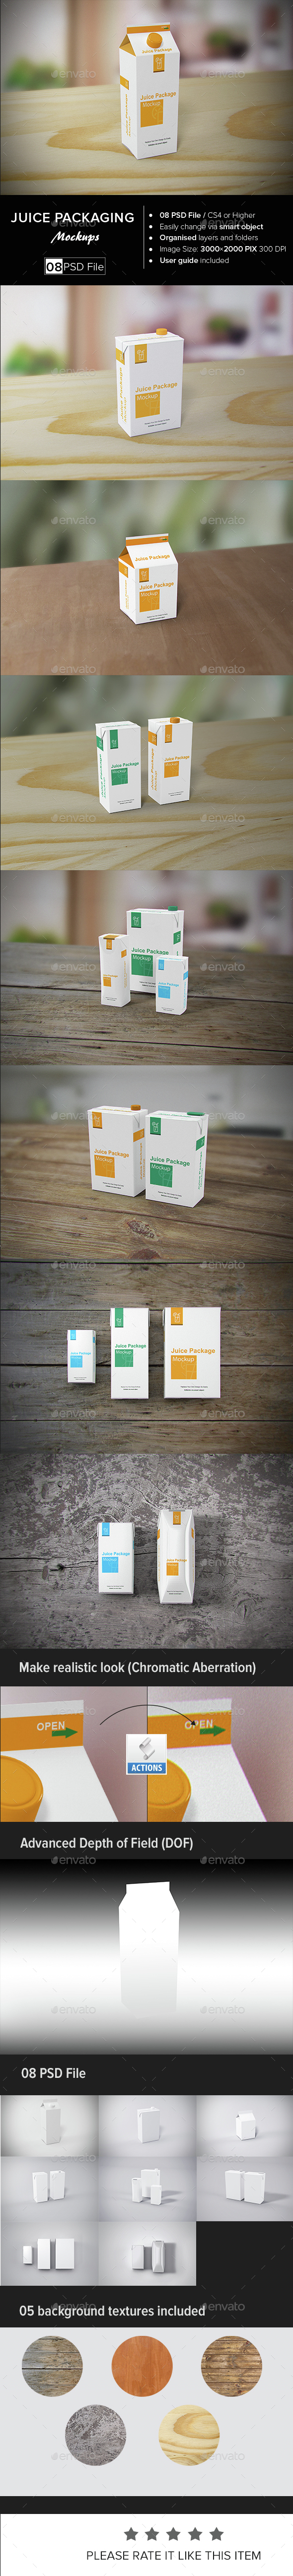 Juice Packaging Mock-up - Food and Drink Packaging